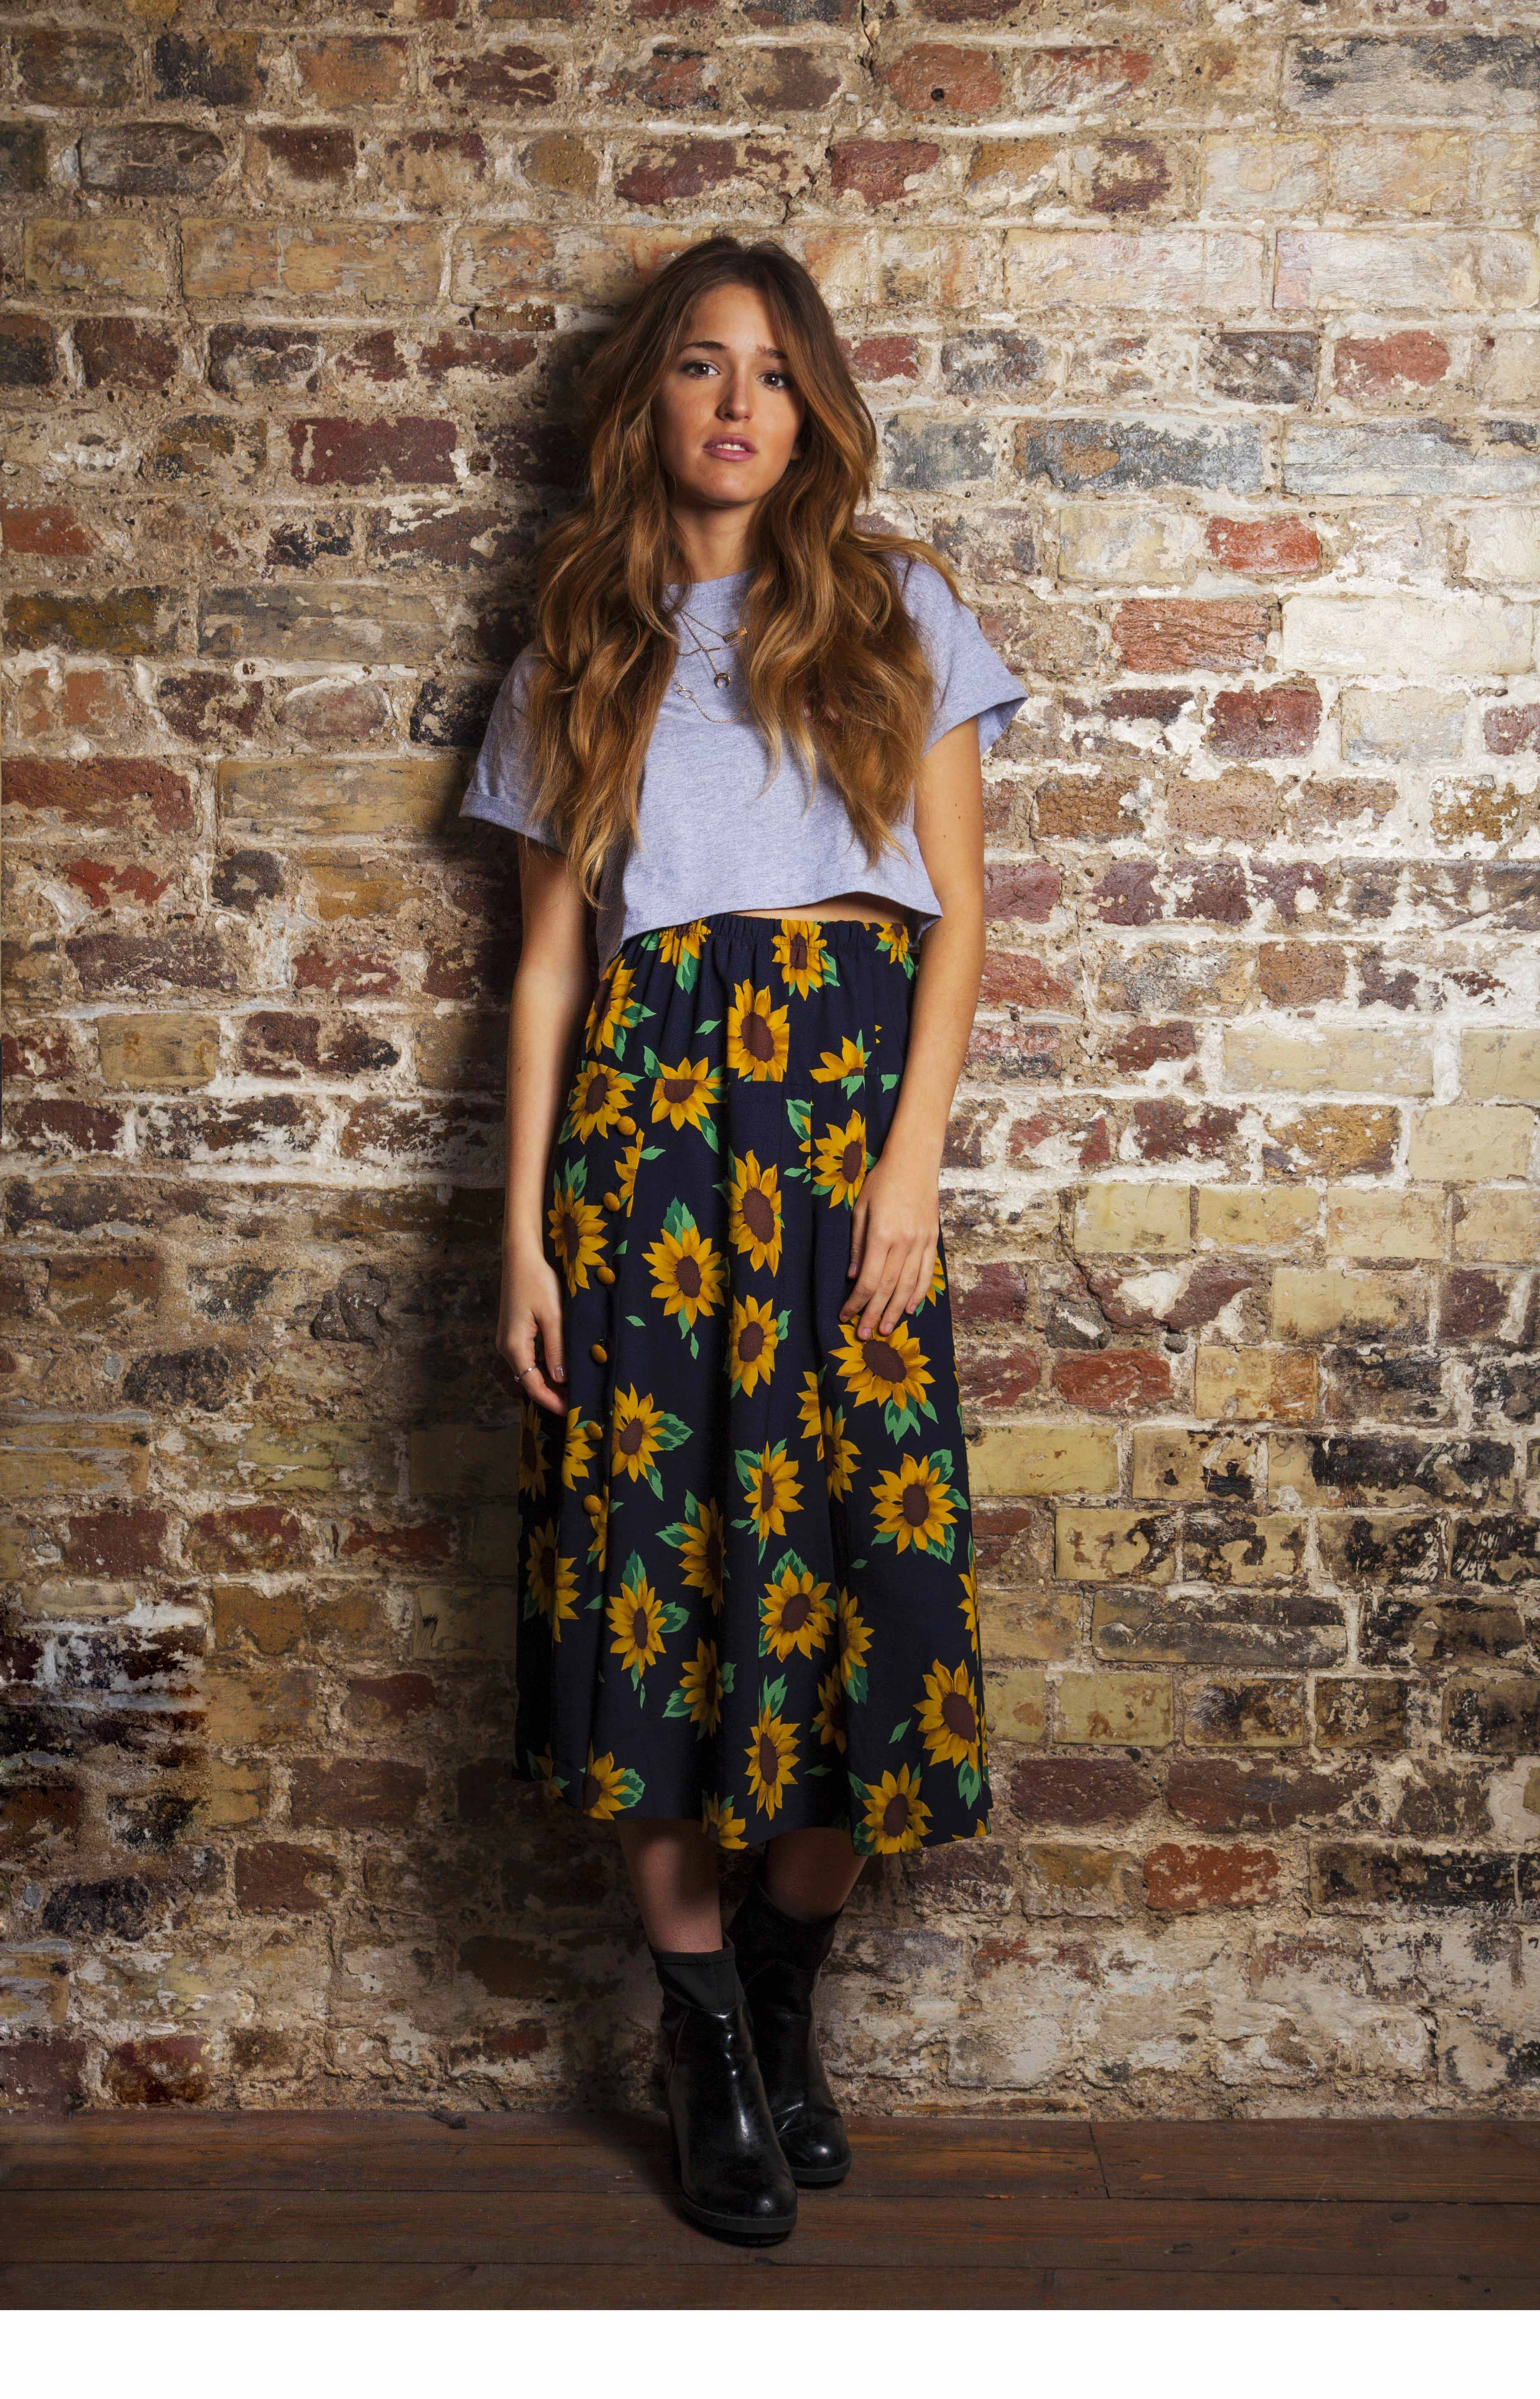 99006a8020 Vintage Midi Skirt - Sunflower Print | On Fleek | Fashion, Boho ...